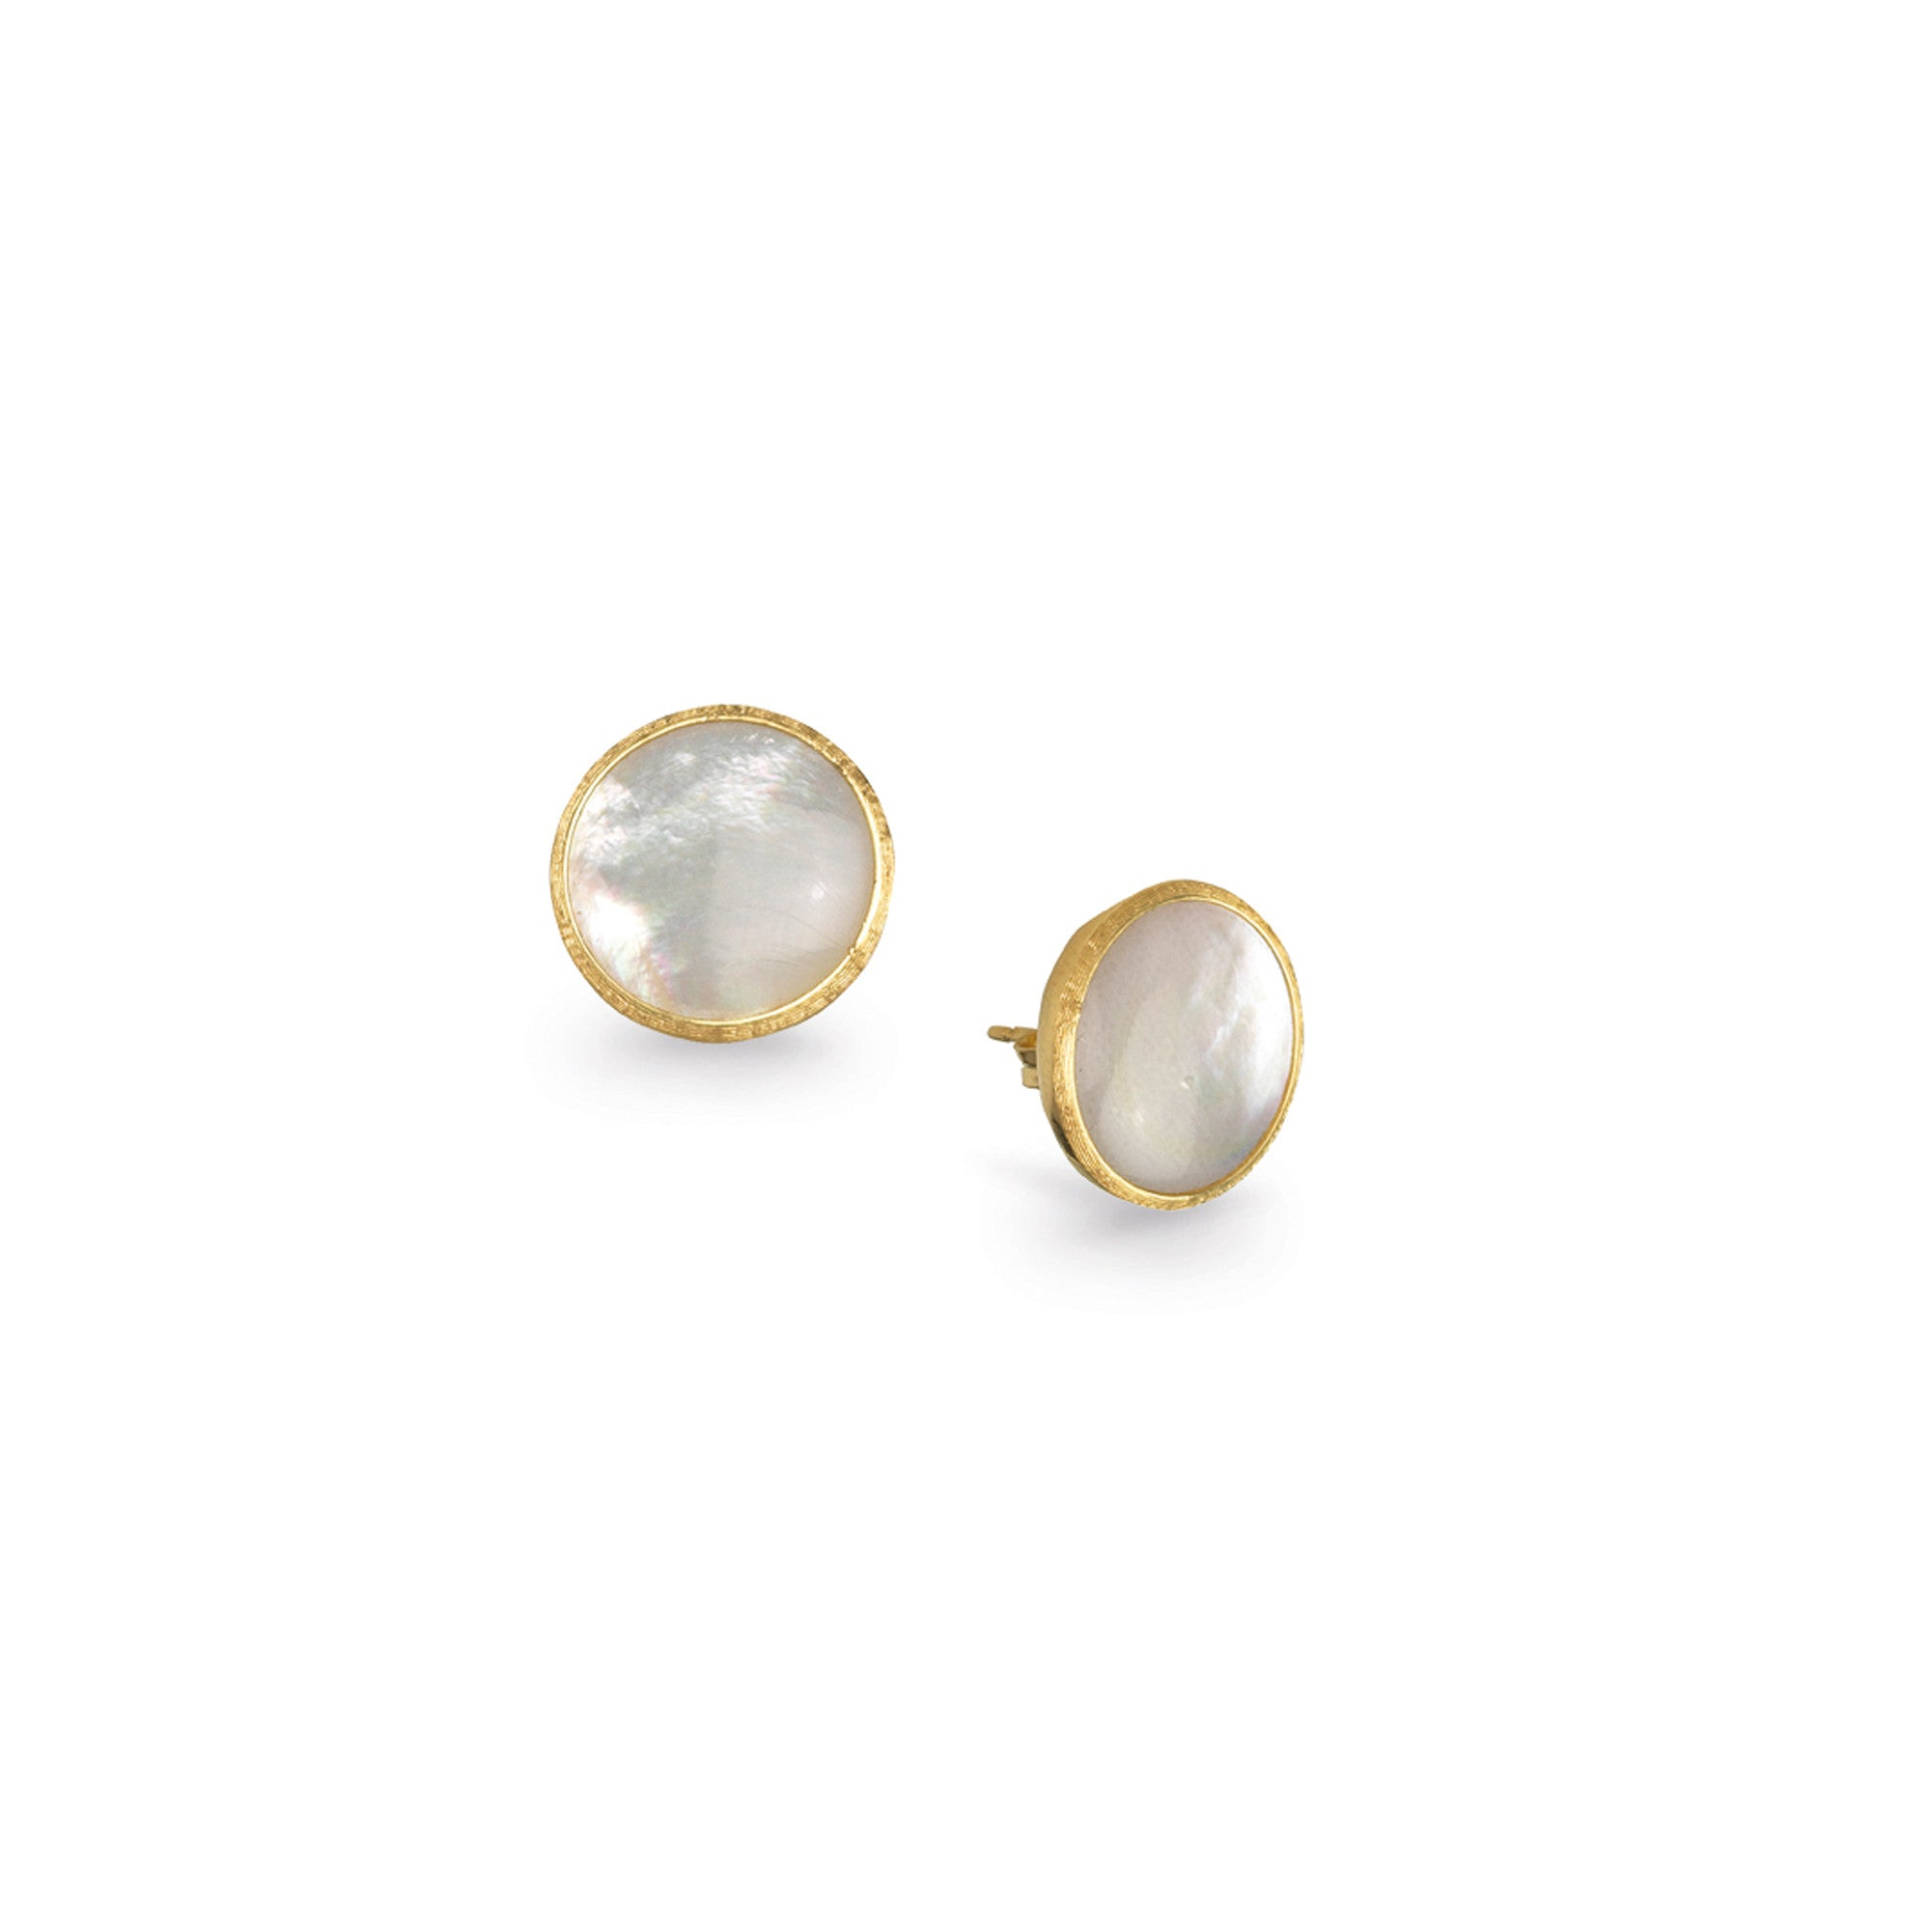 18K Yellow Gold Mother of Pearl Button Earrings